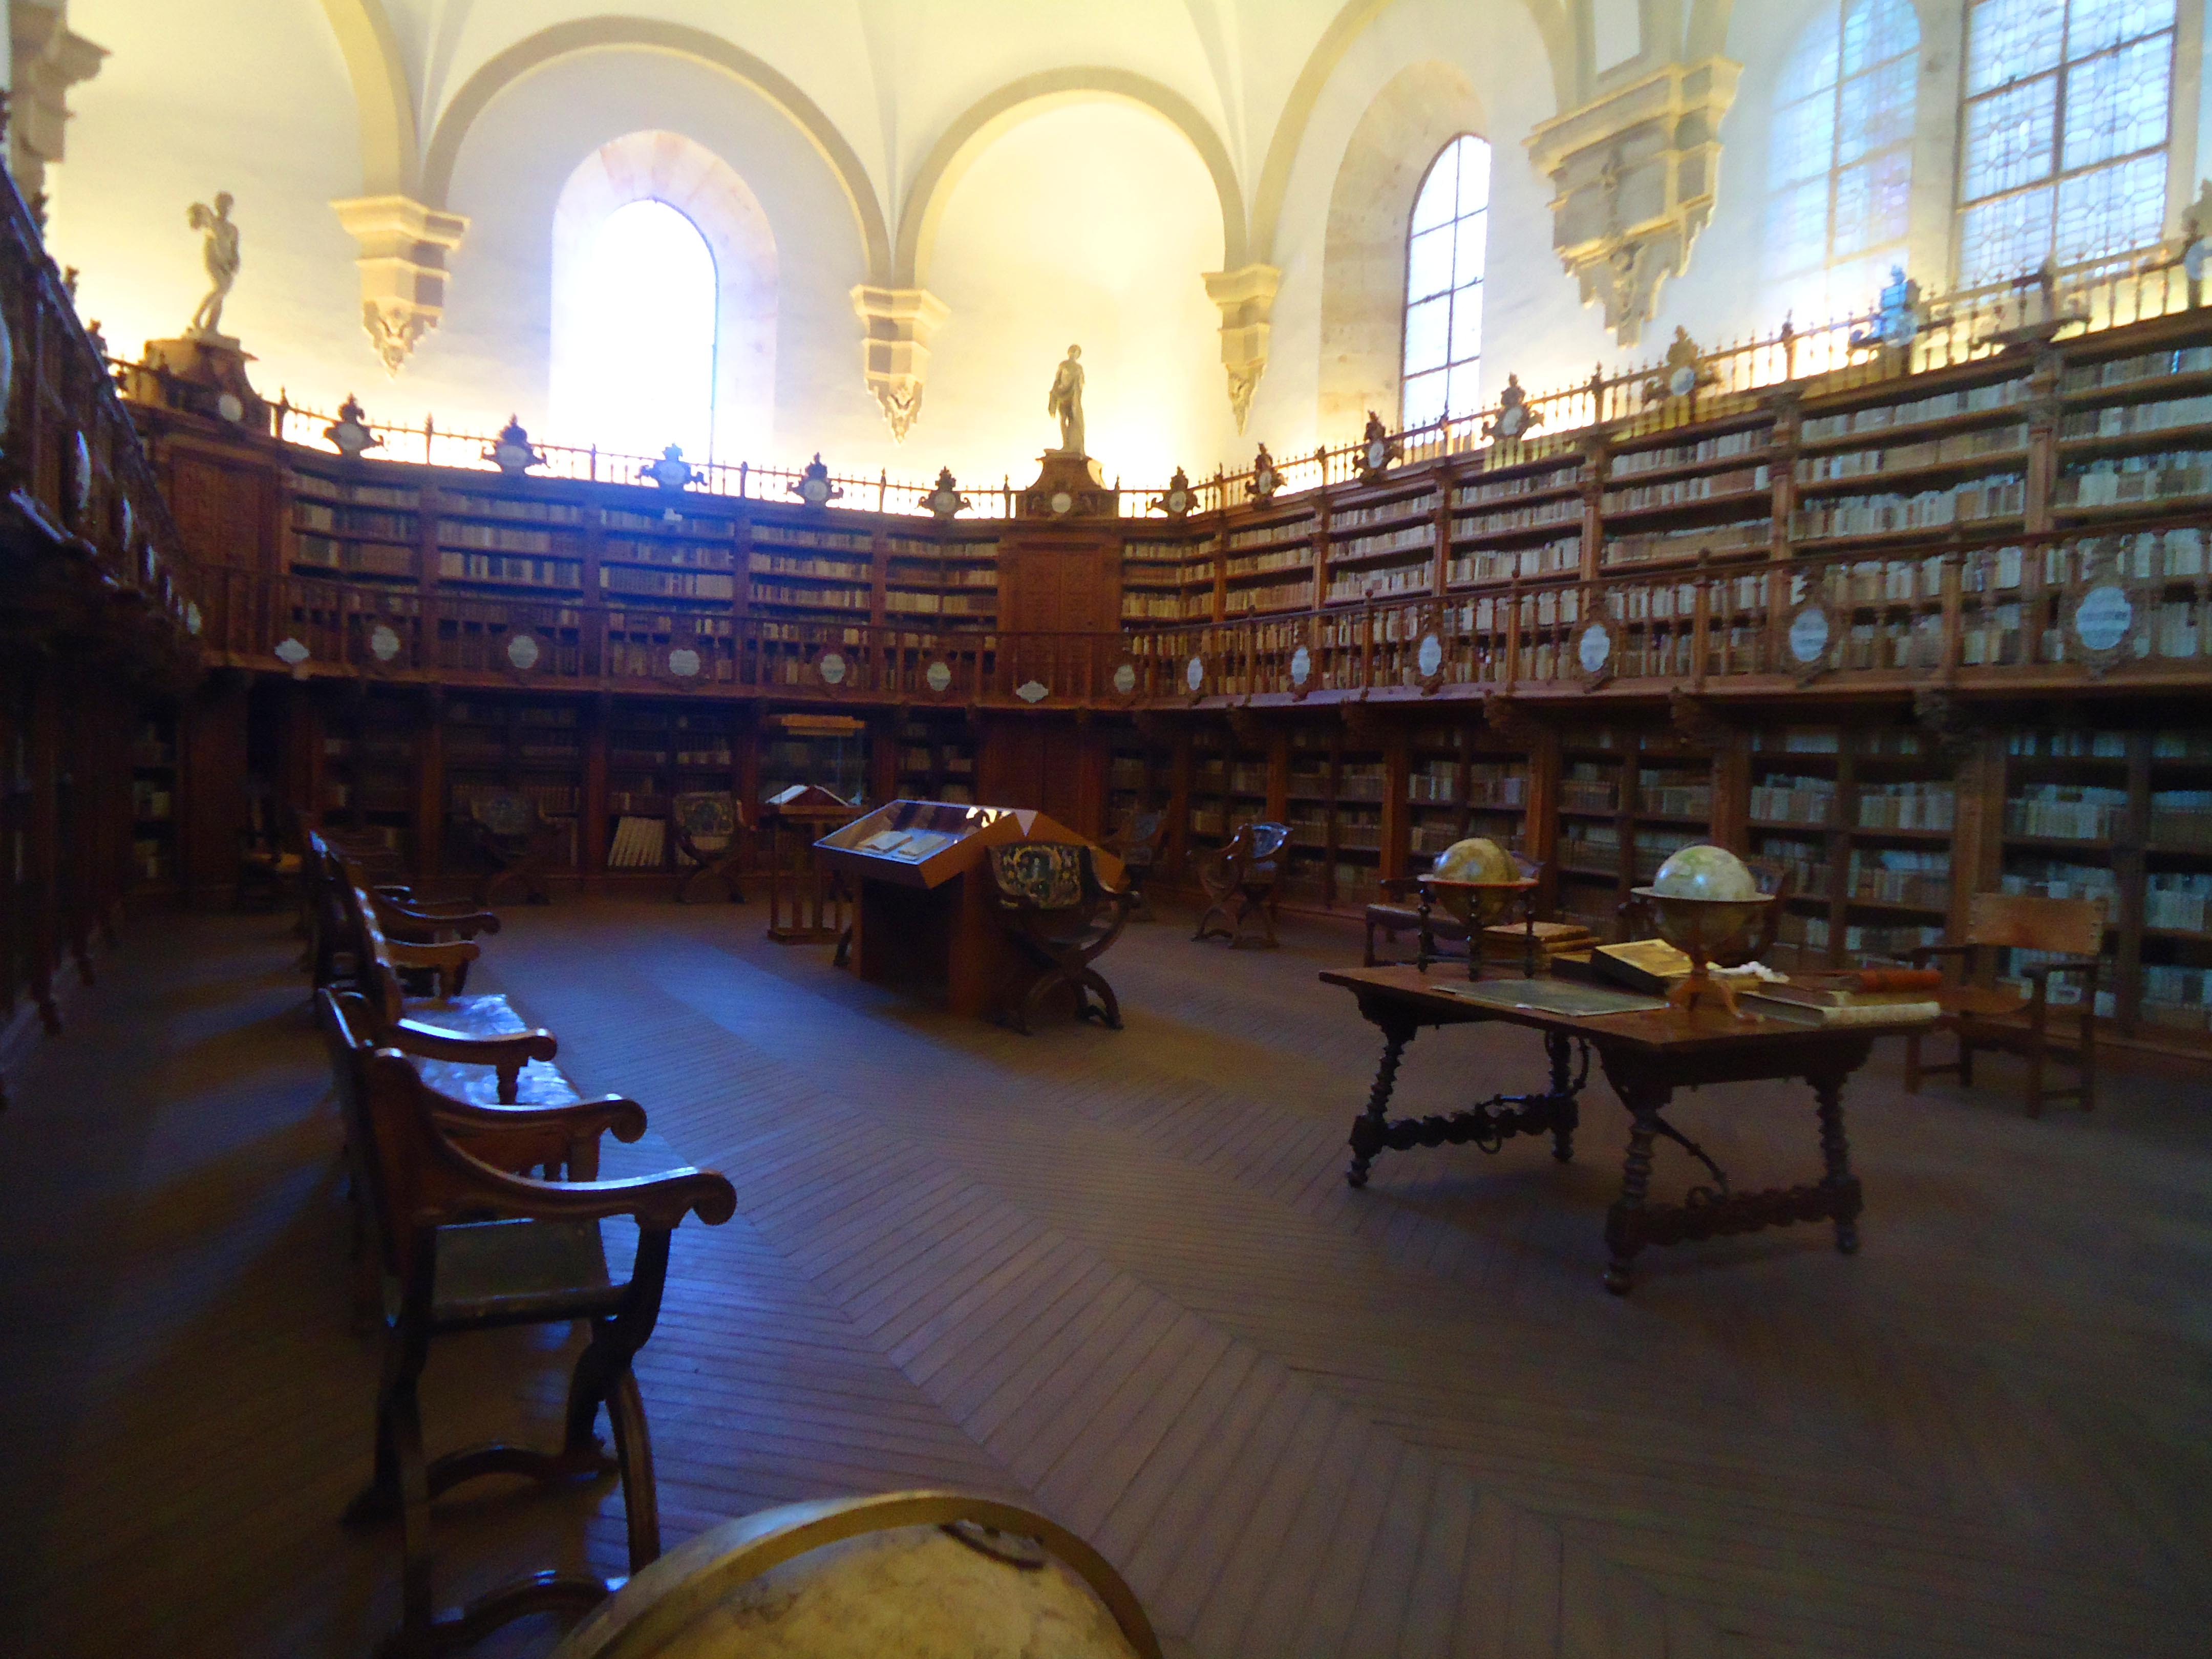 File:Biblioteca antigua,Escuelas Mayores, Universidad de ... - photo#39